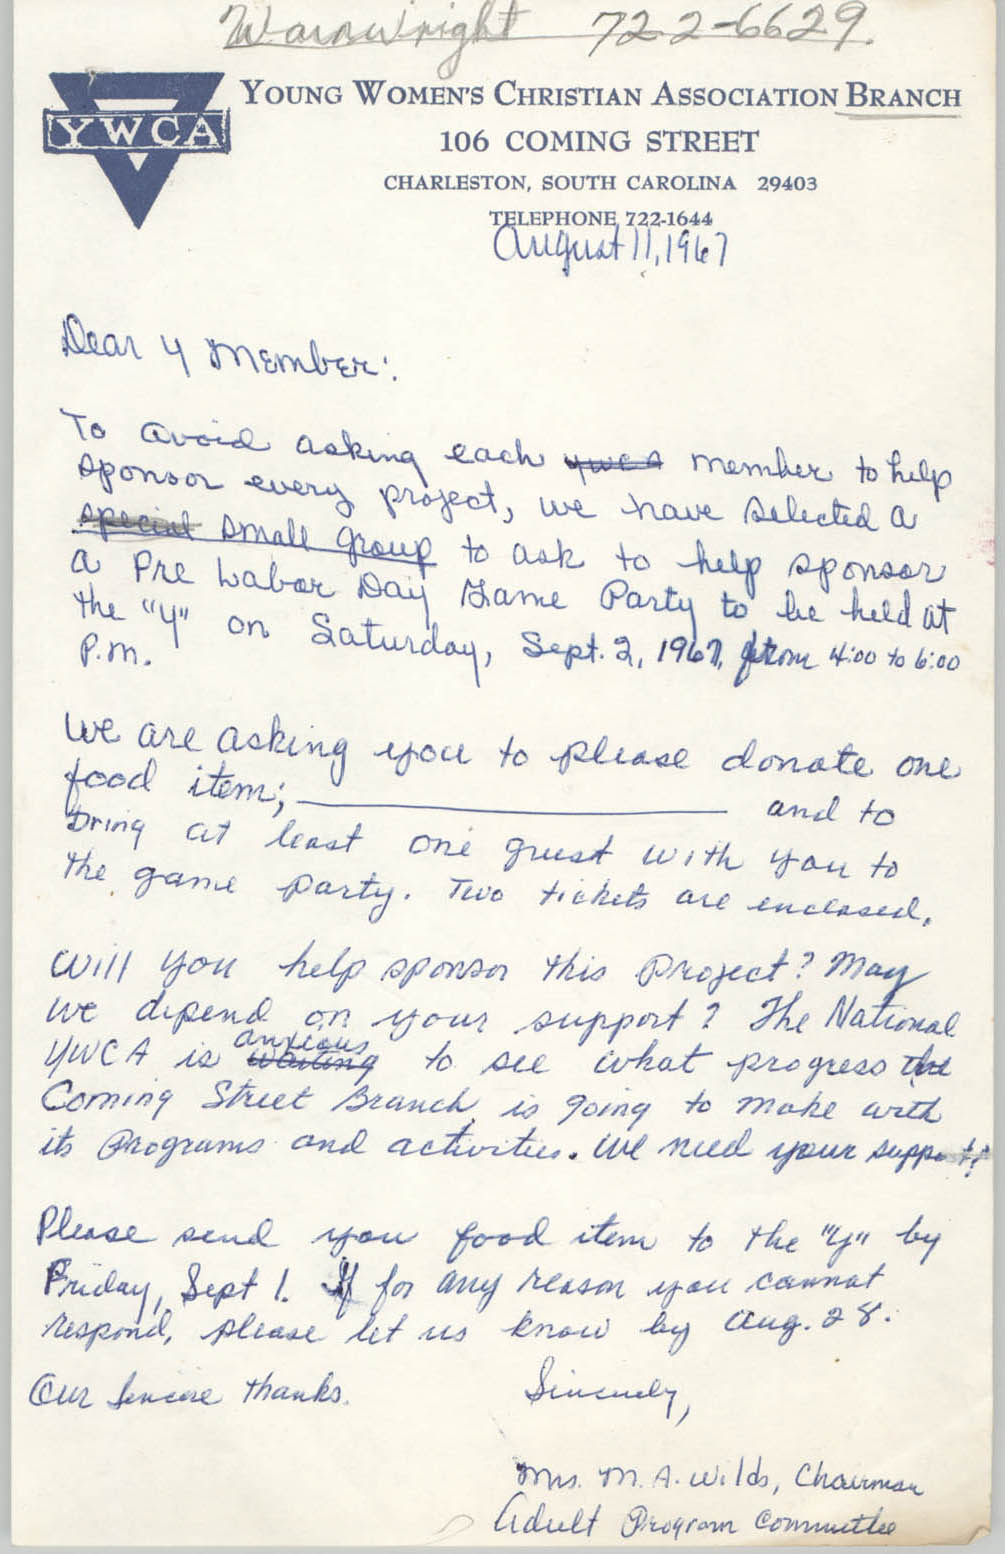 Letter from Mrs. M. A. Wilds, August 11, 1967